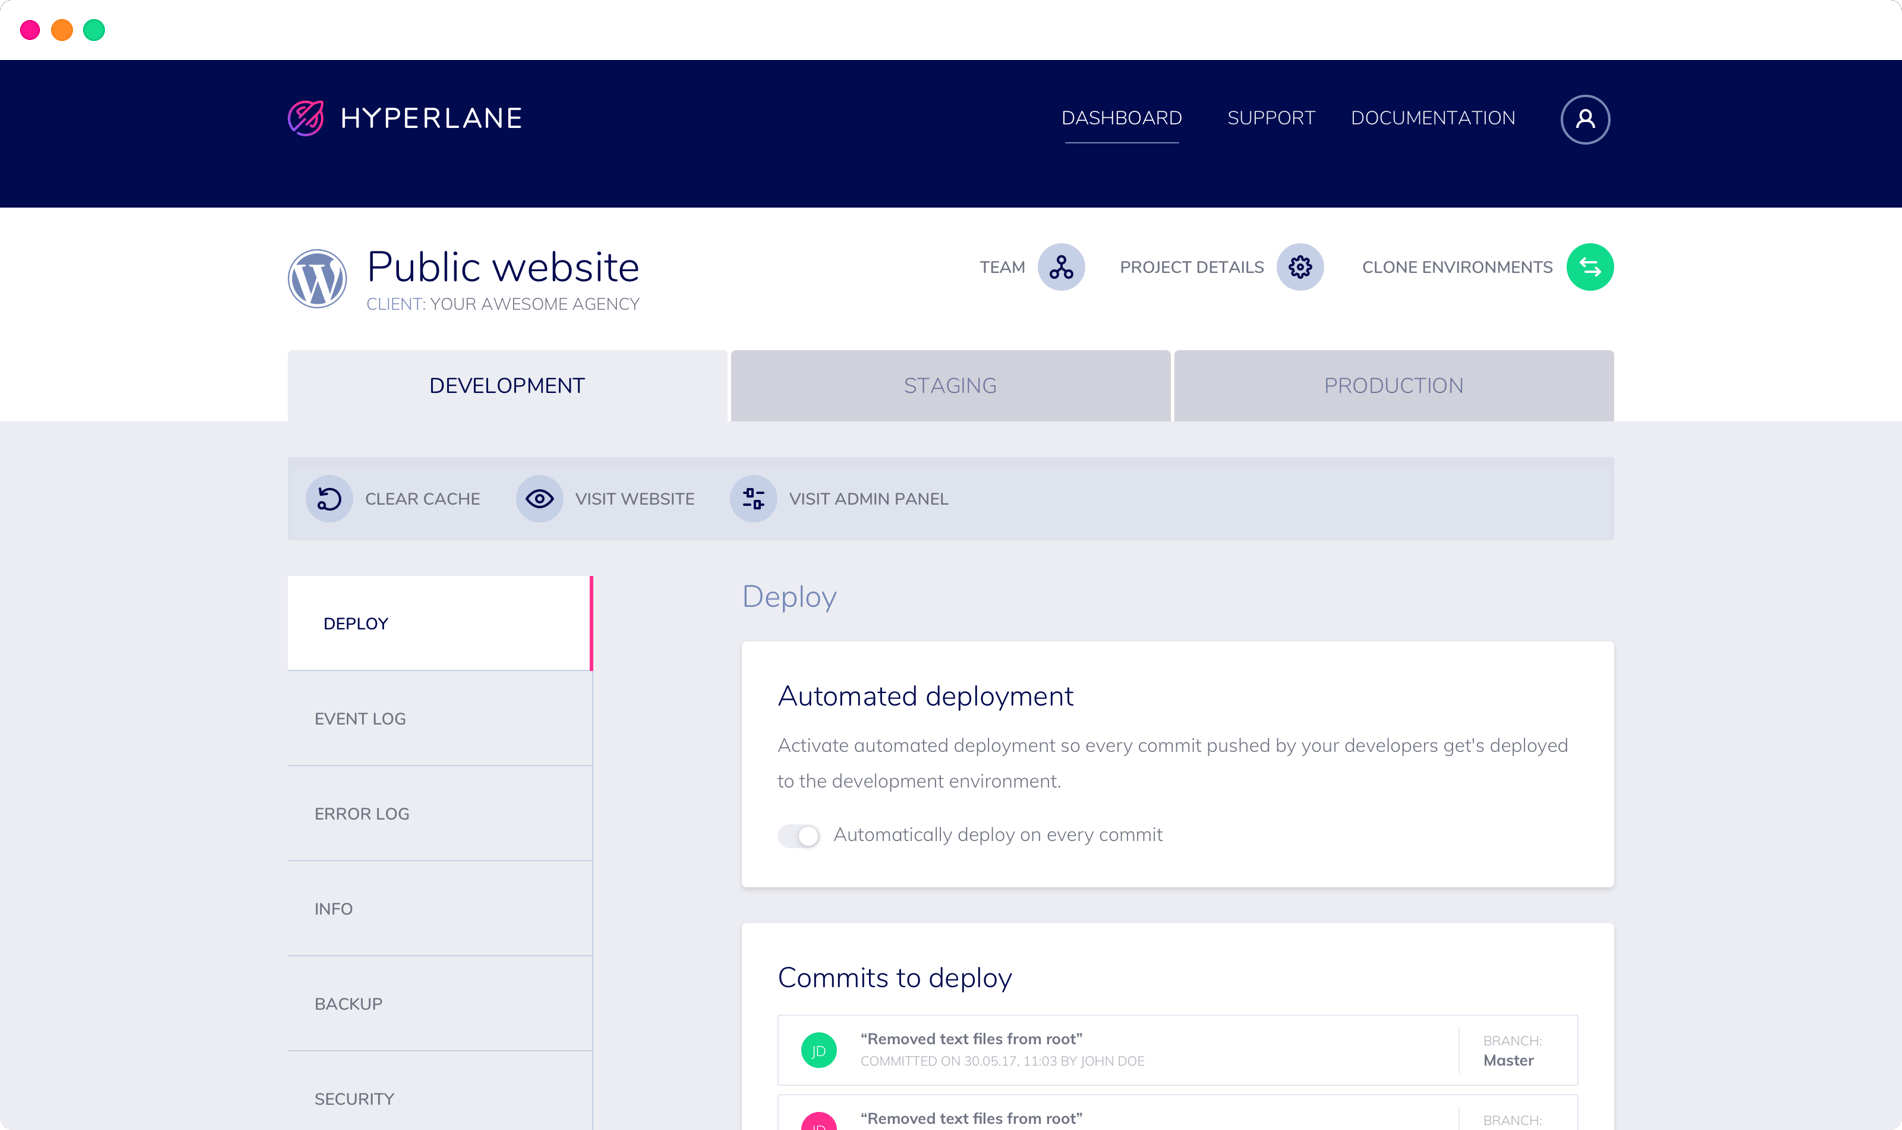 Hyperfast hosting for WordPress and Craft CMS - Hyperlane